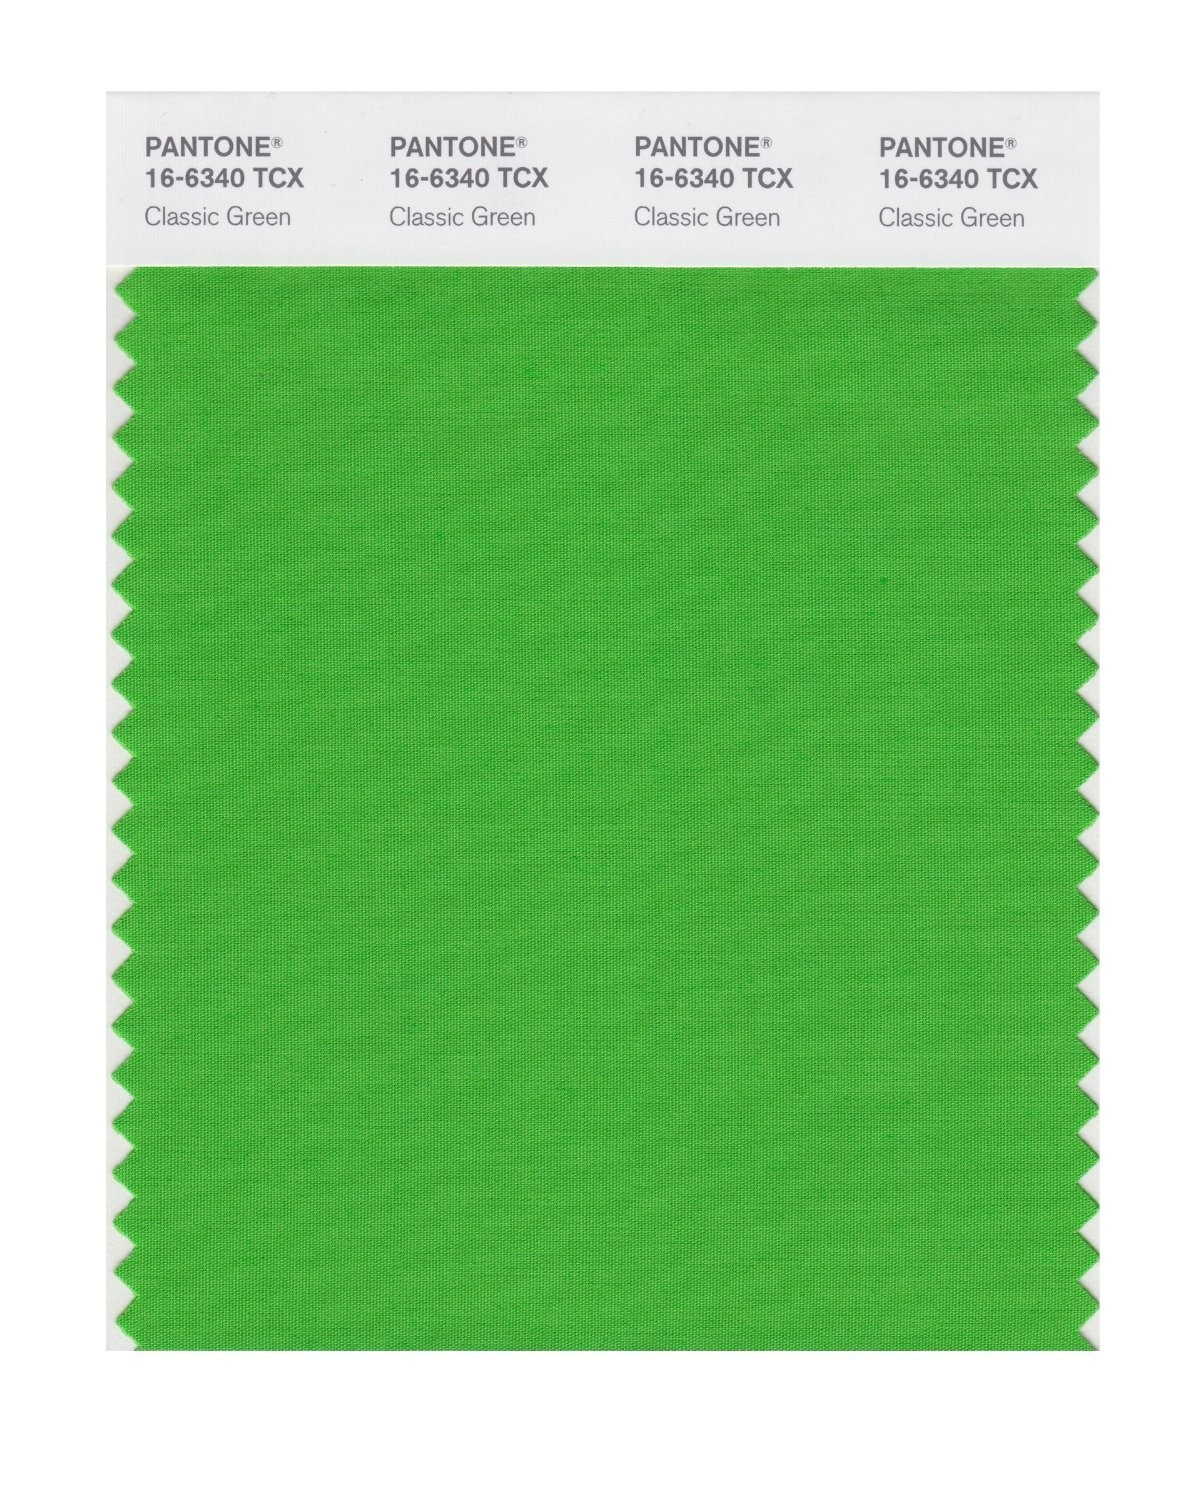 Pantone 16-6340 TCX Swatch Card Classic Green